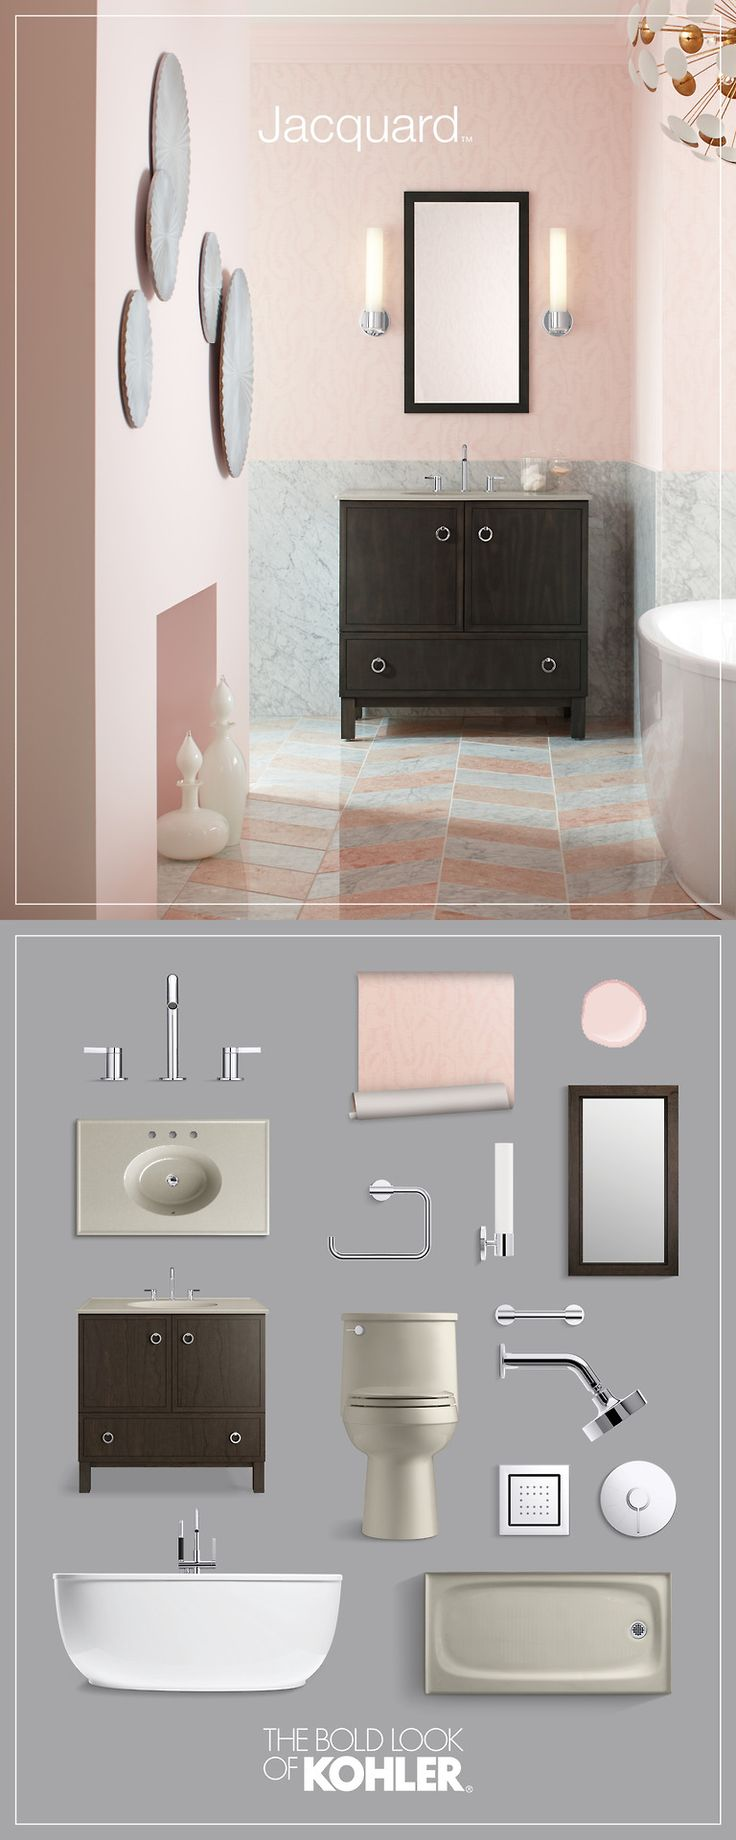 Photo Gallery For Website Get the look Pink Bathroom design ideas Kohler Jacquard Vanity and freestanding bath